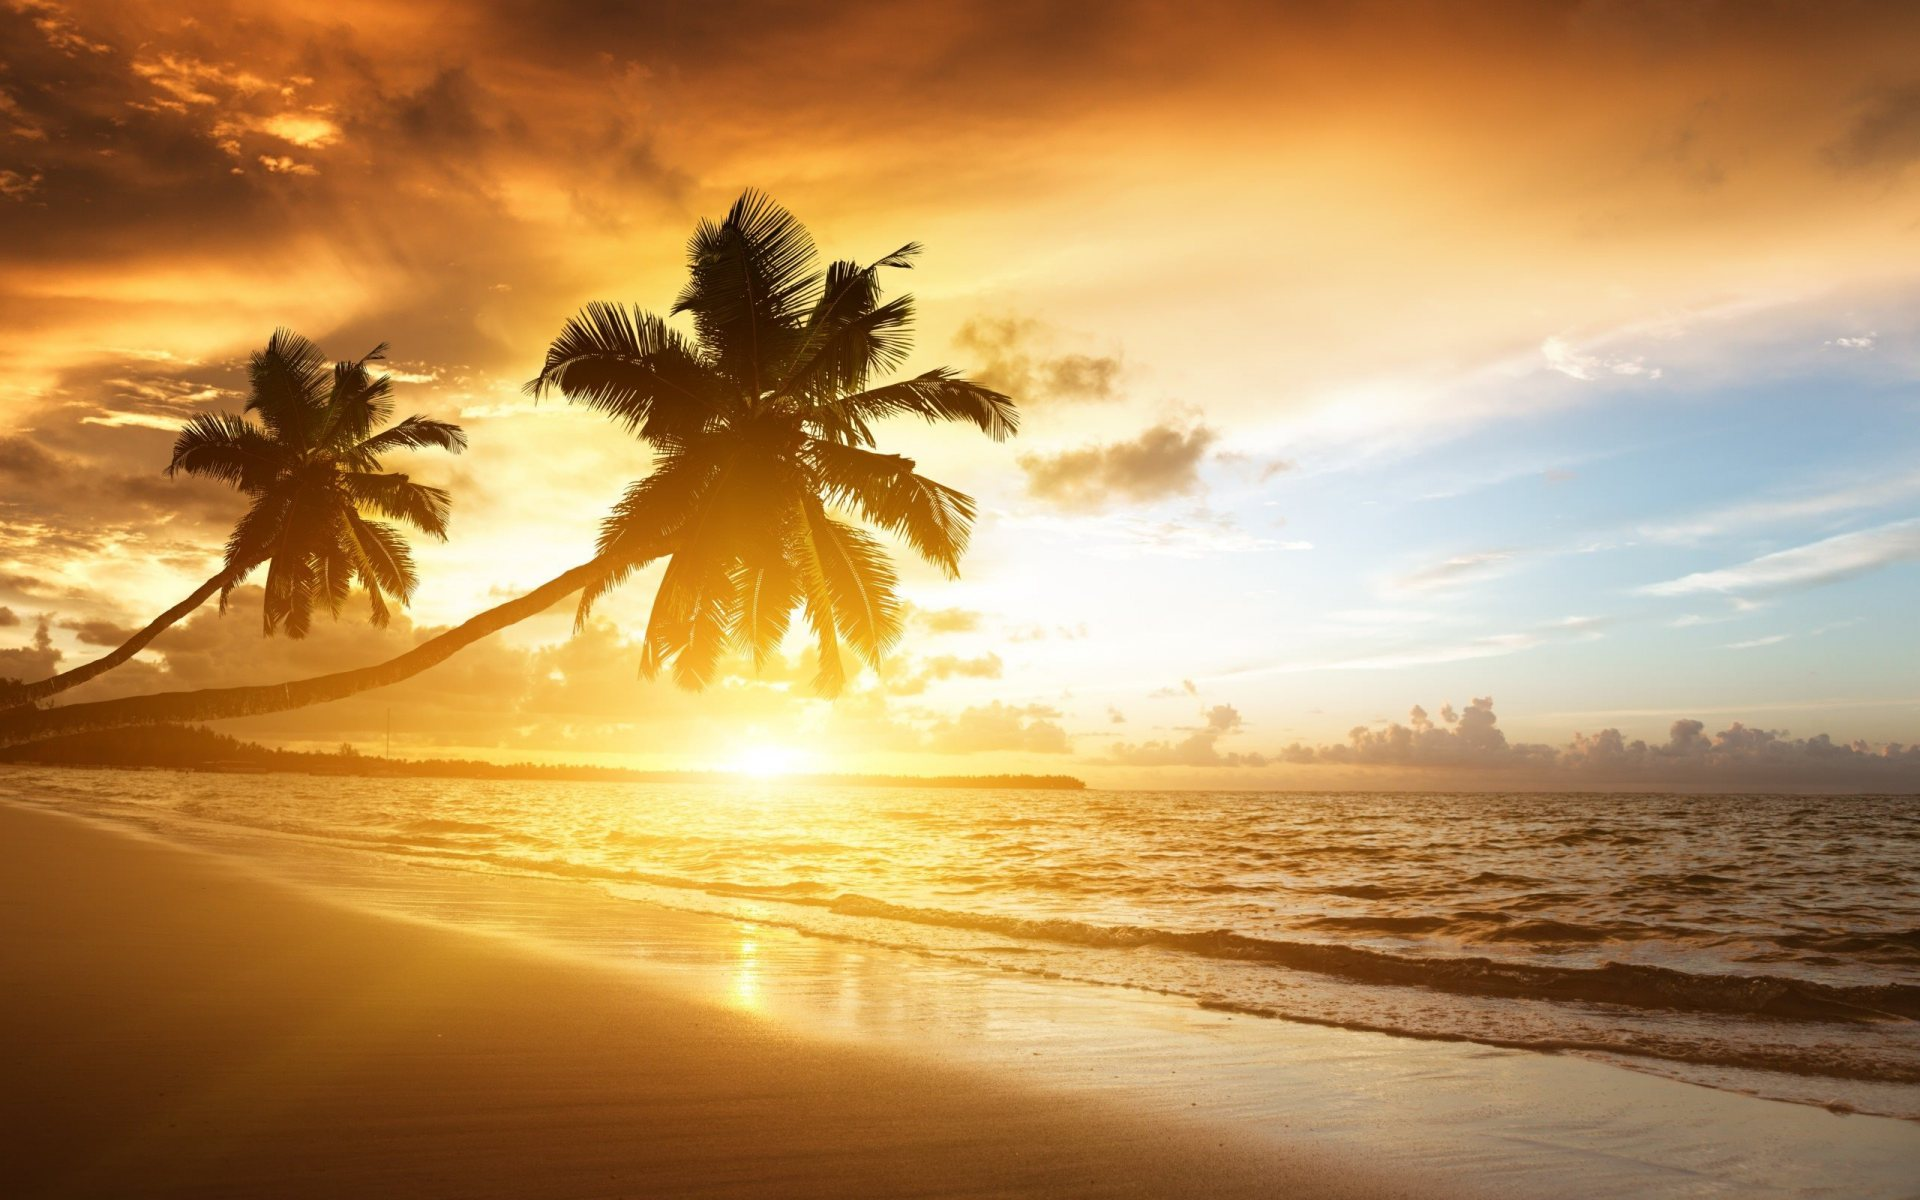 Background image beach - Tropical Beach Background 21